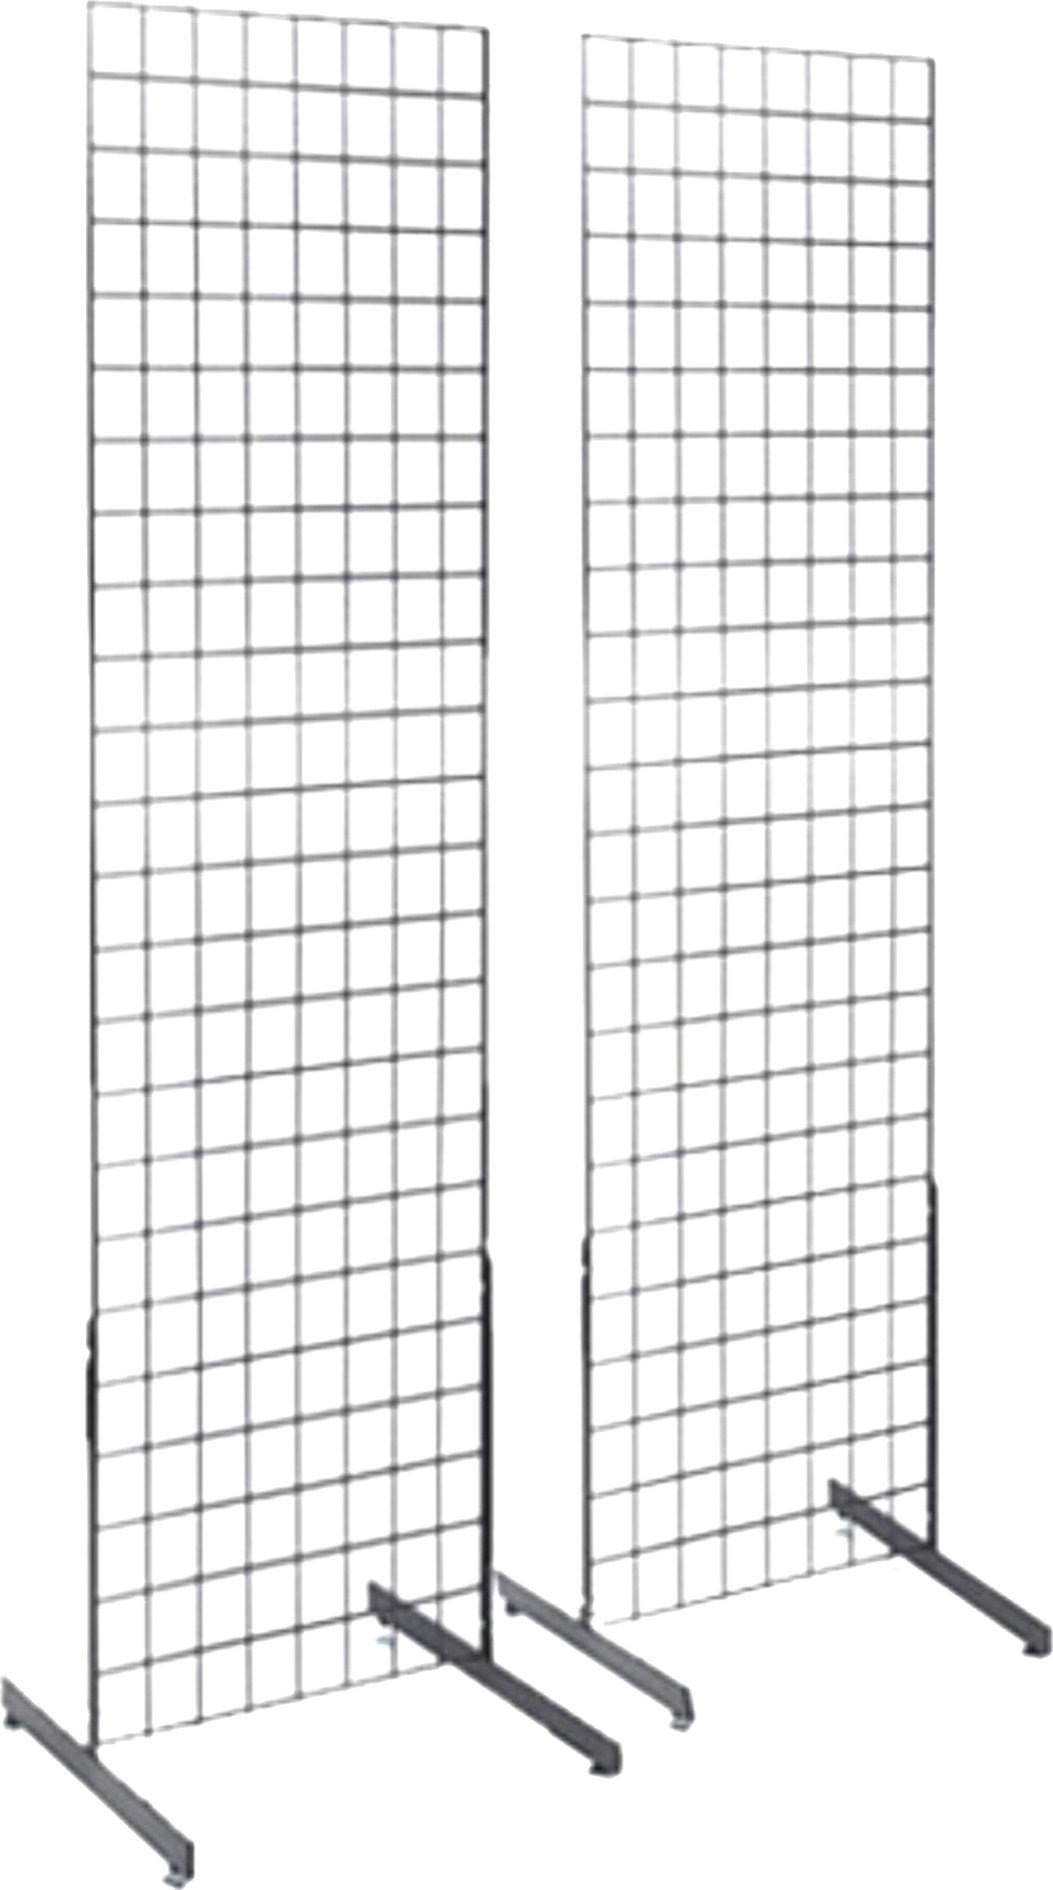 2' x 6' Gridwall Panel Tower with T-Base Floorstanding Display Kit, 2-Pack. Chrome